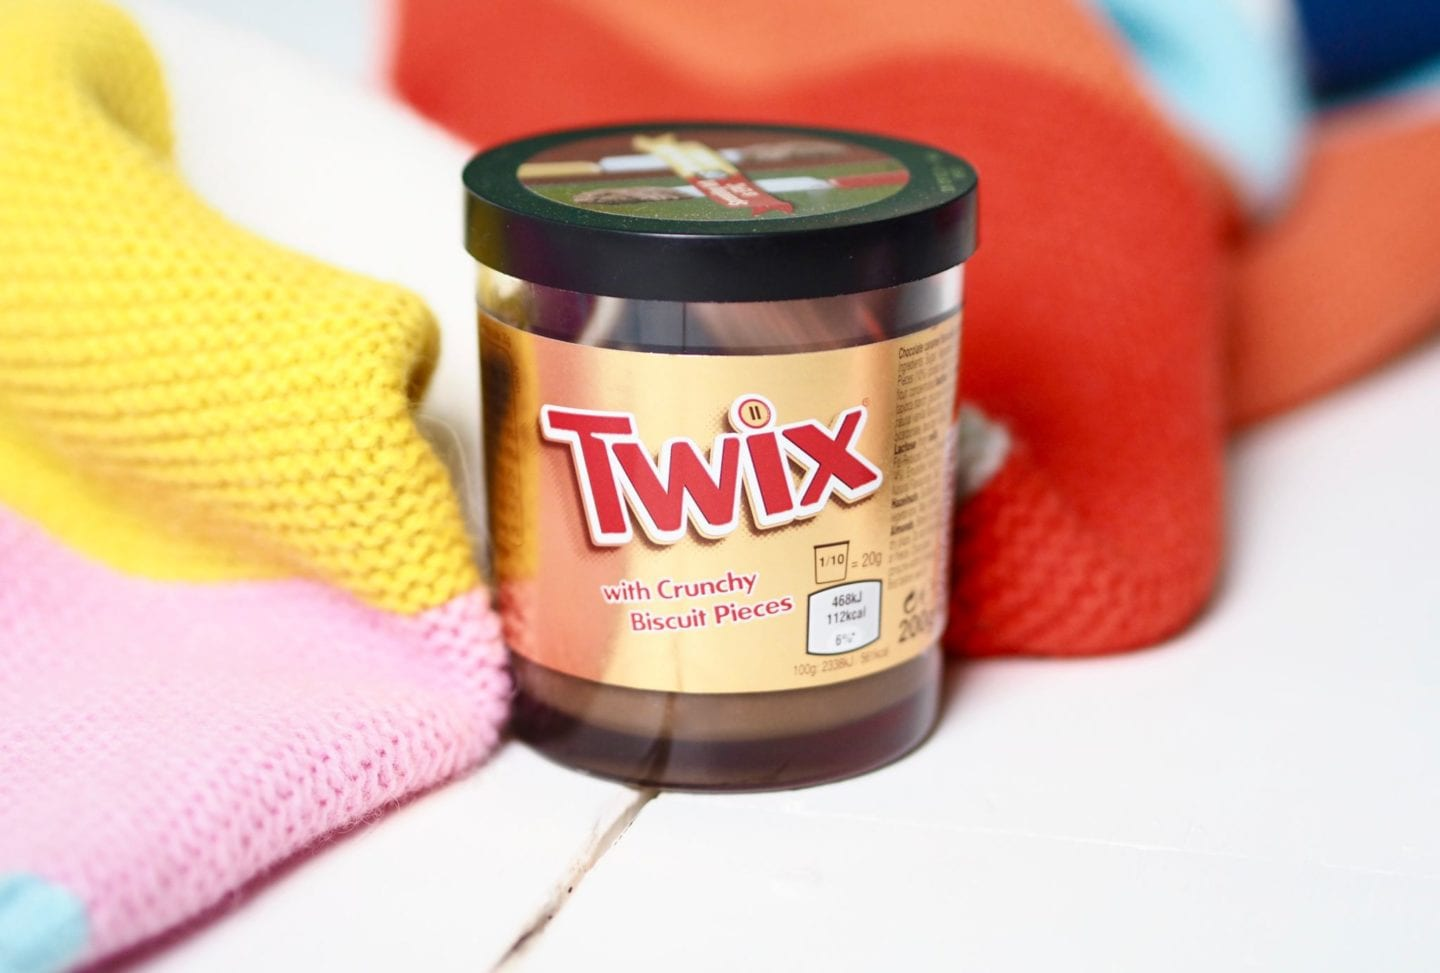 Twix Spread snack